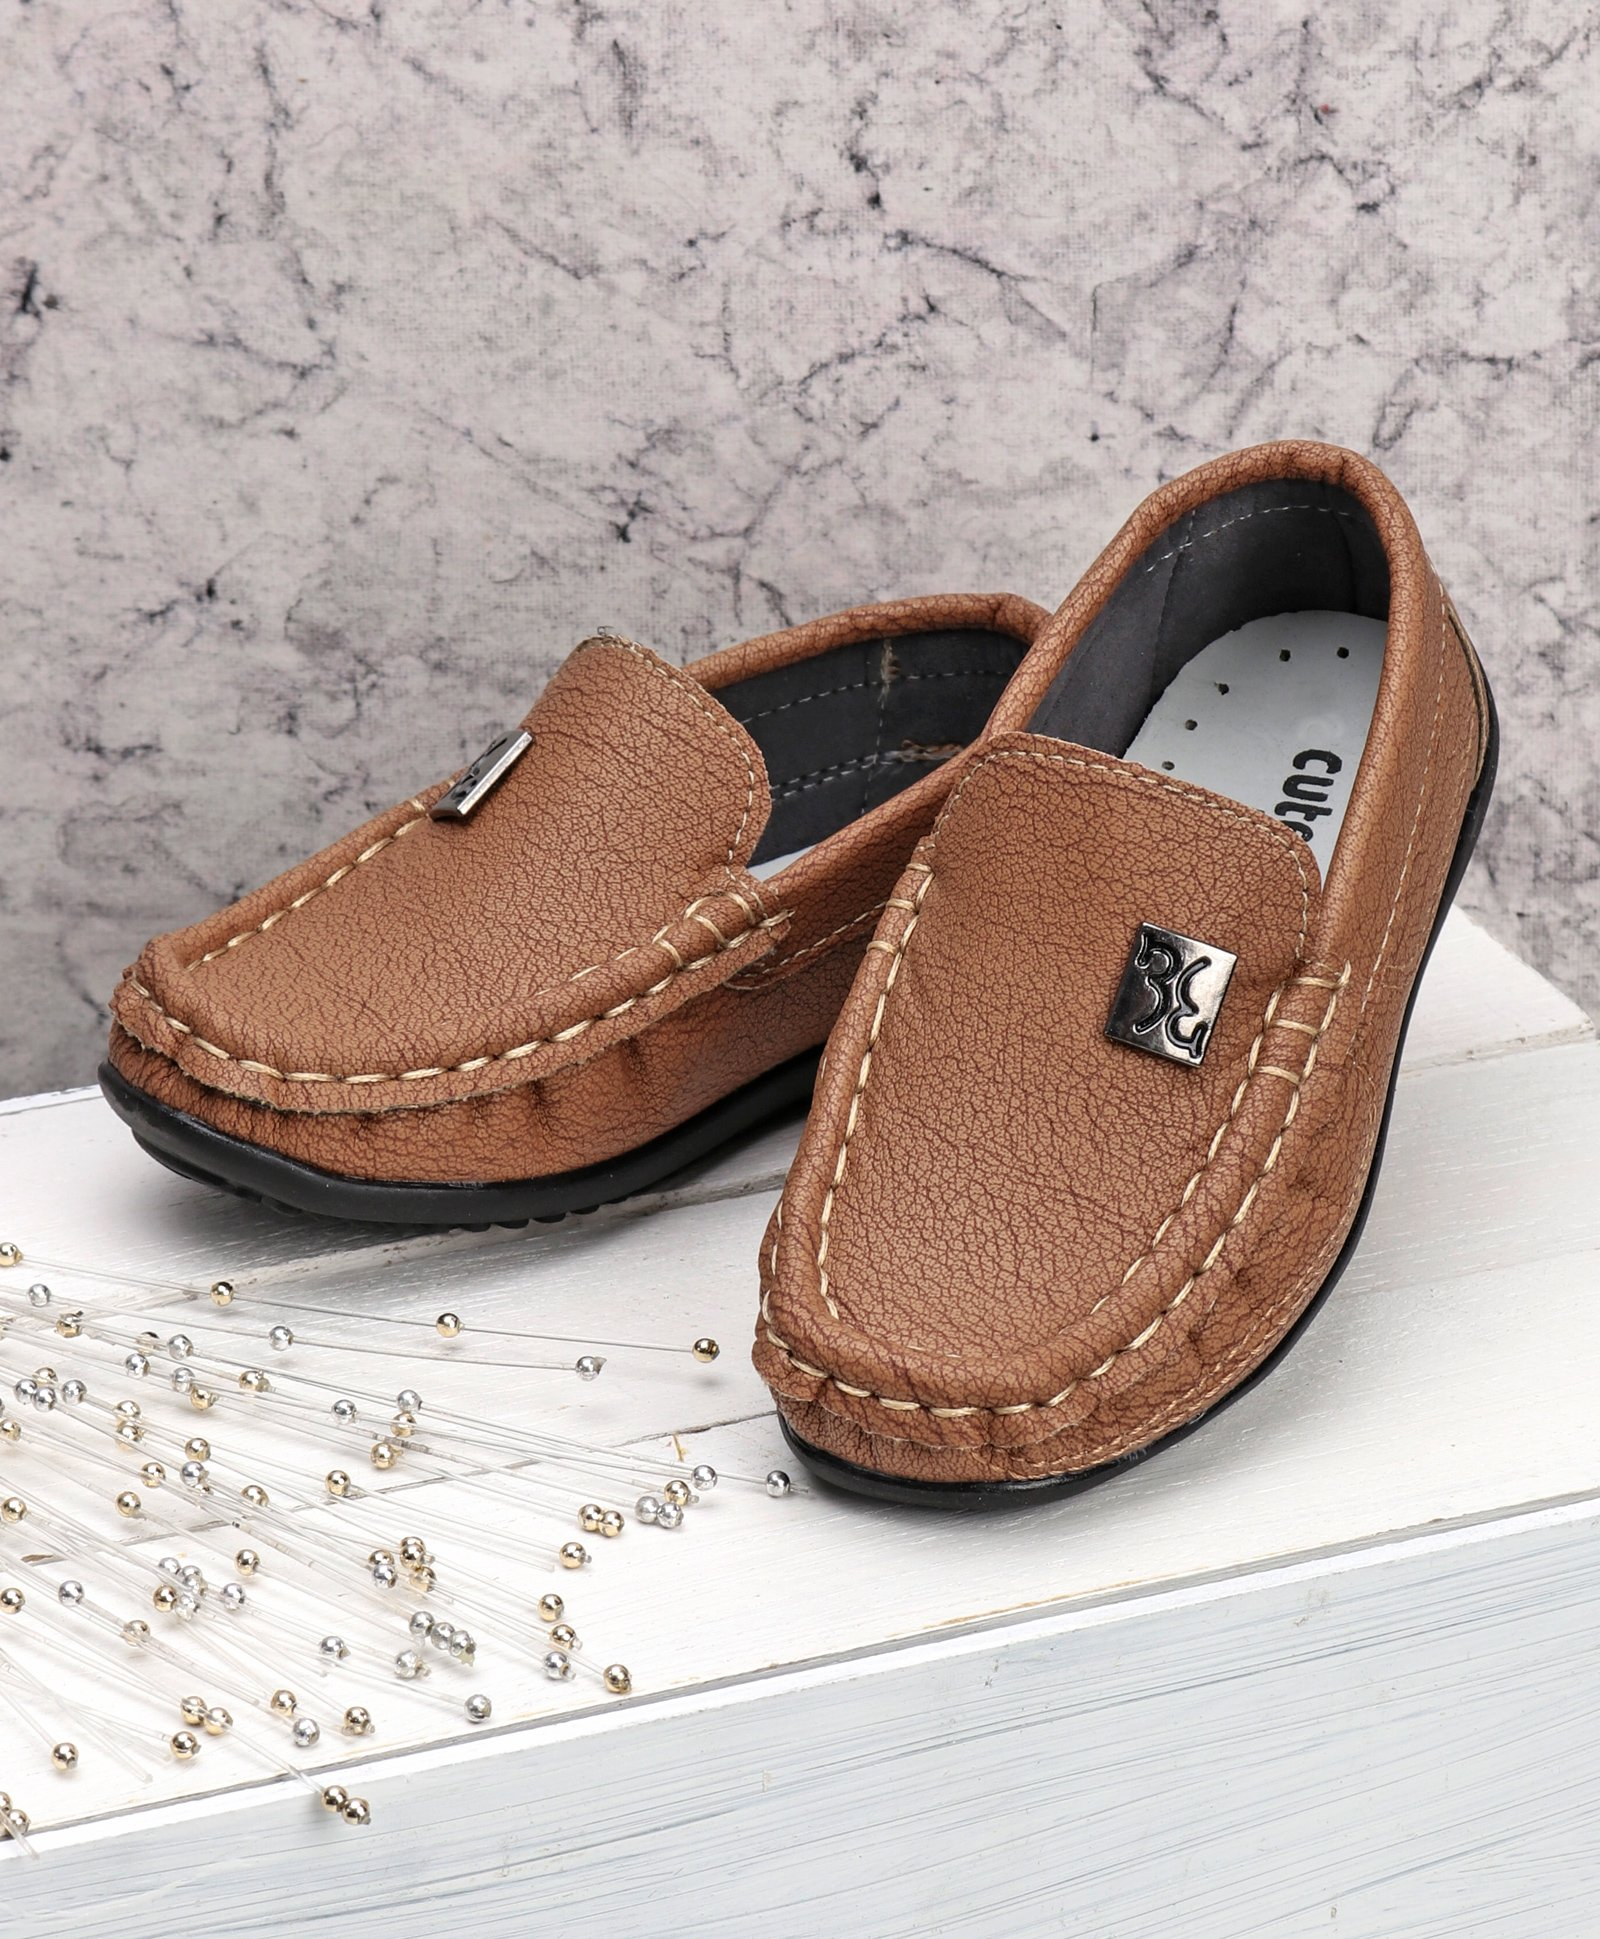 049d6e54c806 Buy Cute Walk by Babyhug Party Wear Loafer Shoes Brown for Boys ...